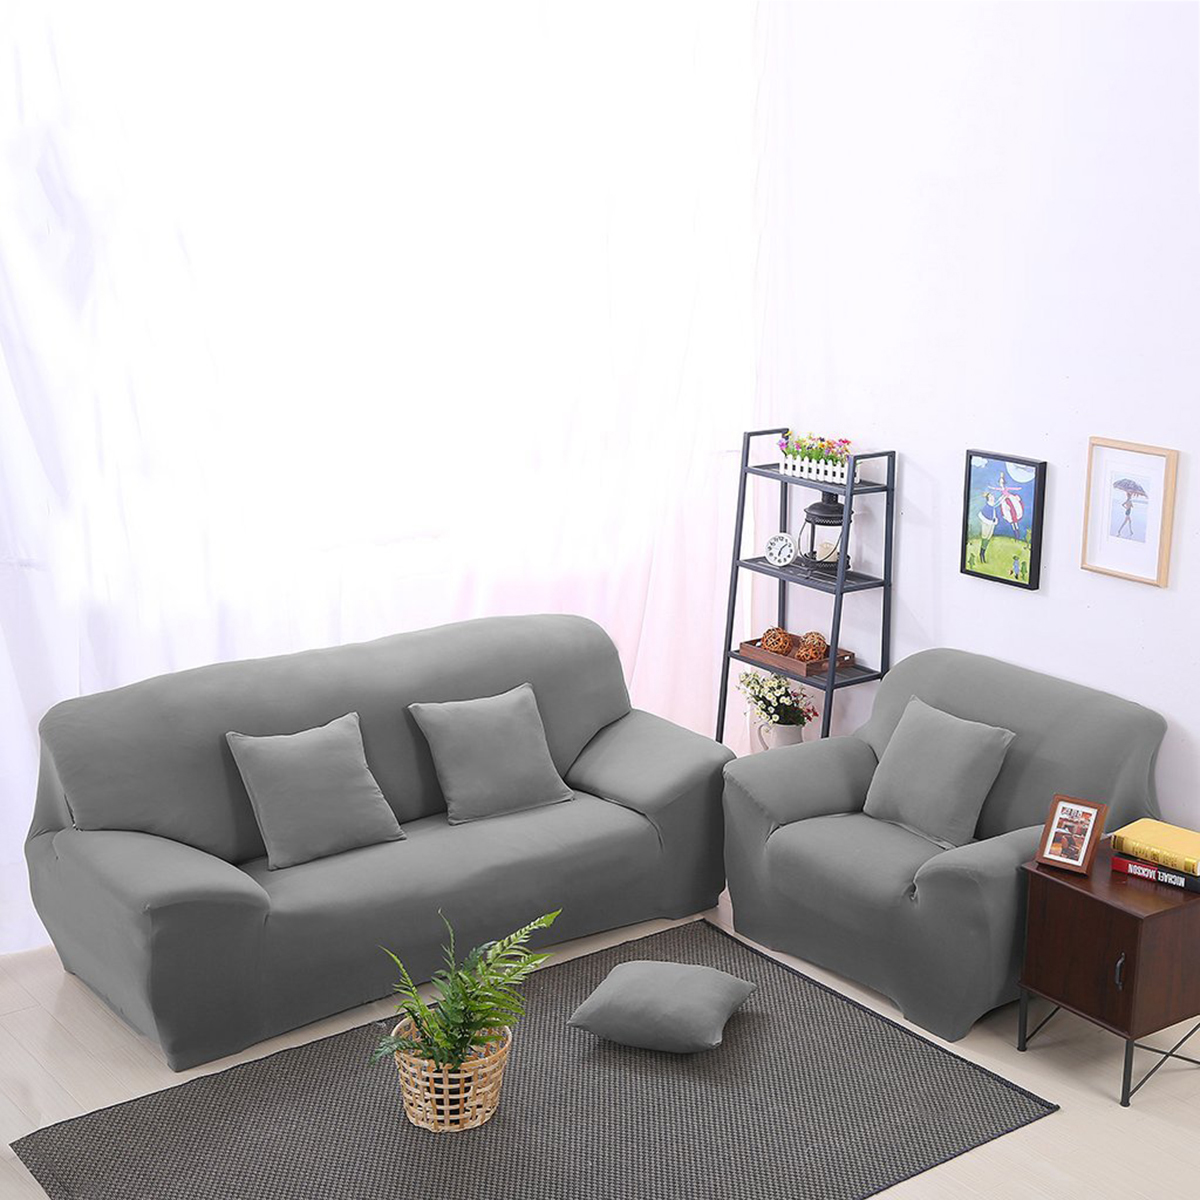 Us 18 47 50 Off Winomo Sofa Cover 3 Seater High Elasticity Anti Mite Chair Covers Sofa Covers For Living Room On Aliexpress